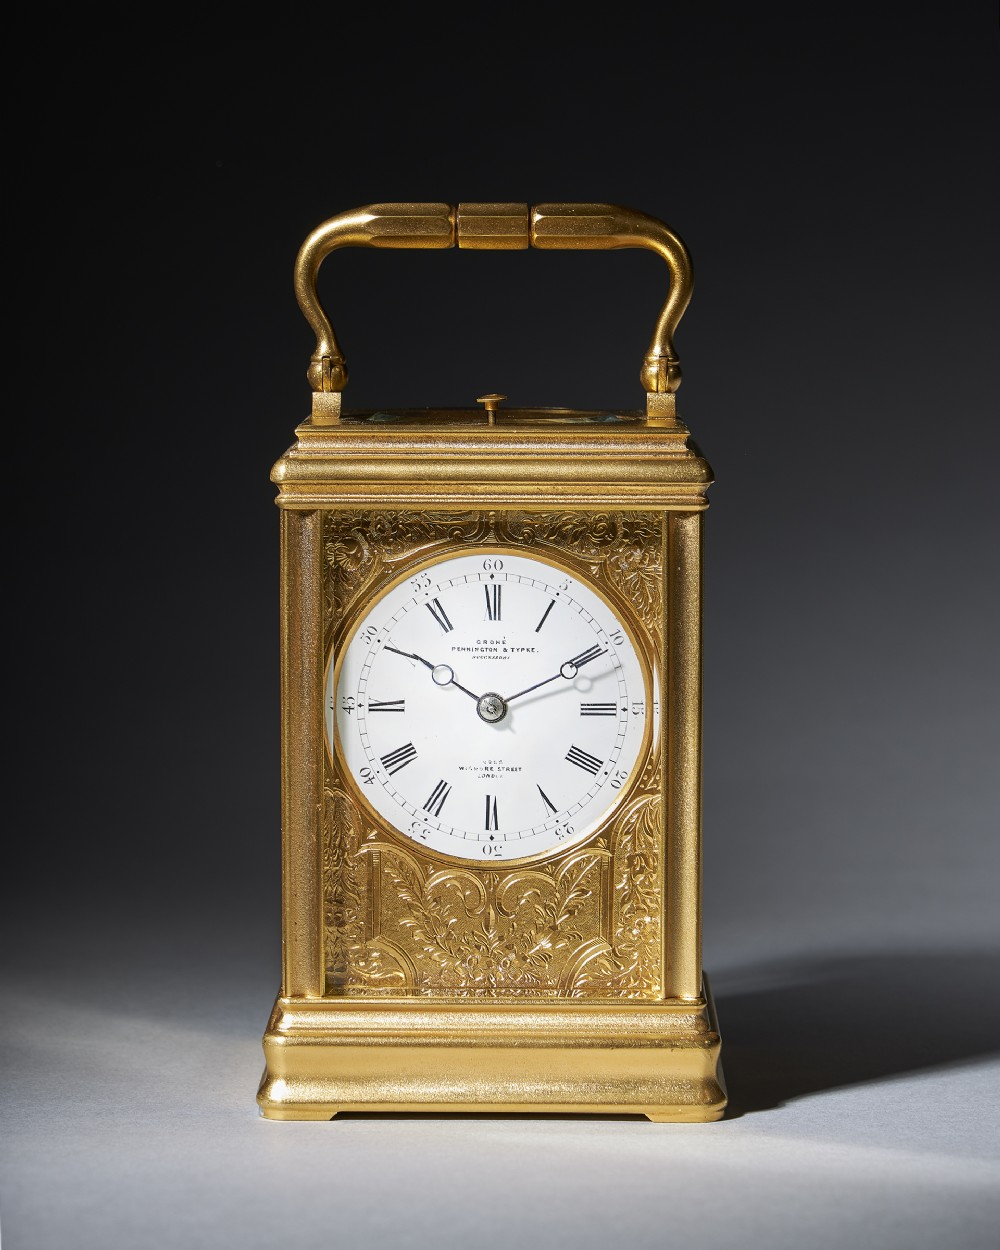 19th century repeating giltbrass carriage clock by the famous drocourt